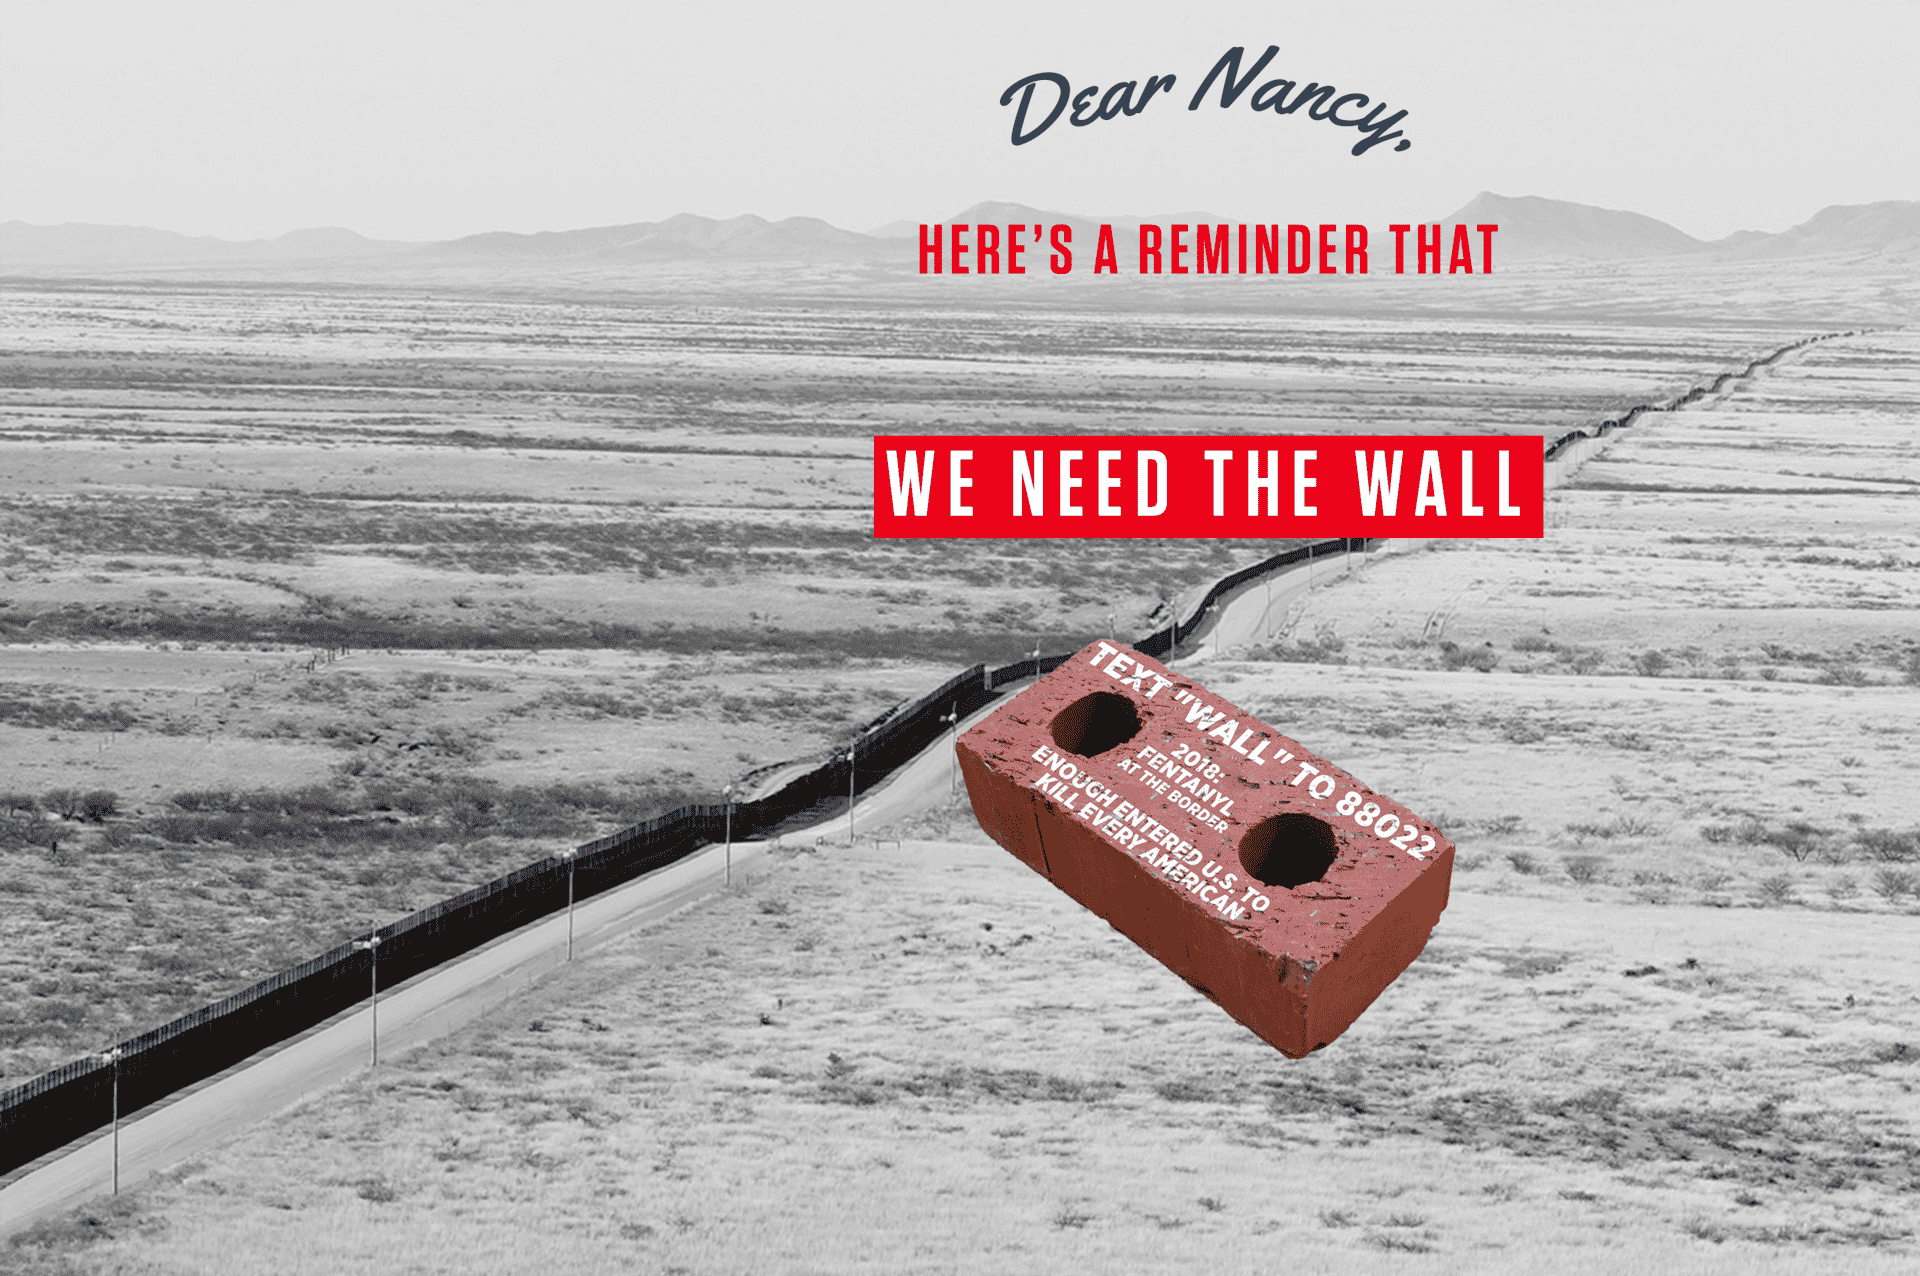 We need the wall dear nancy revv